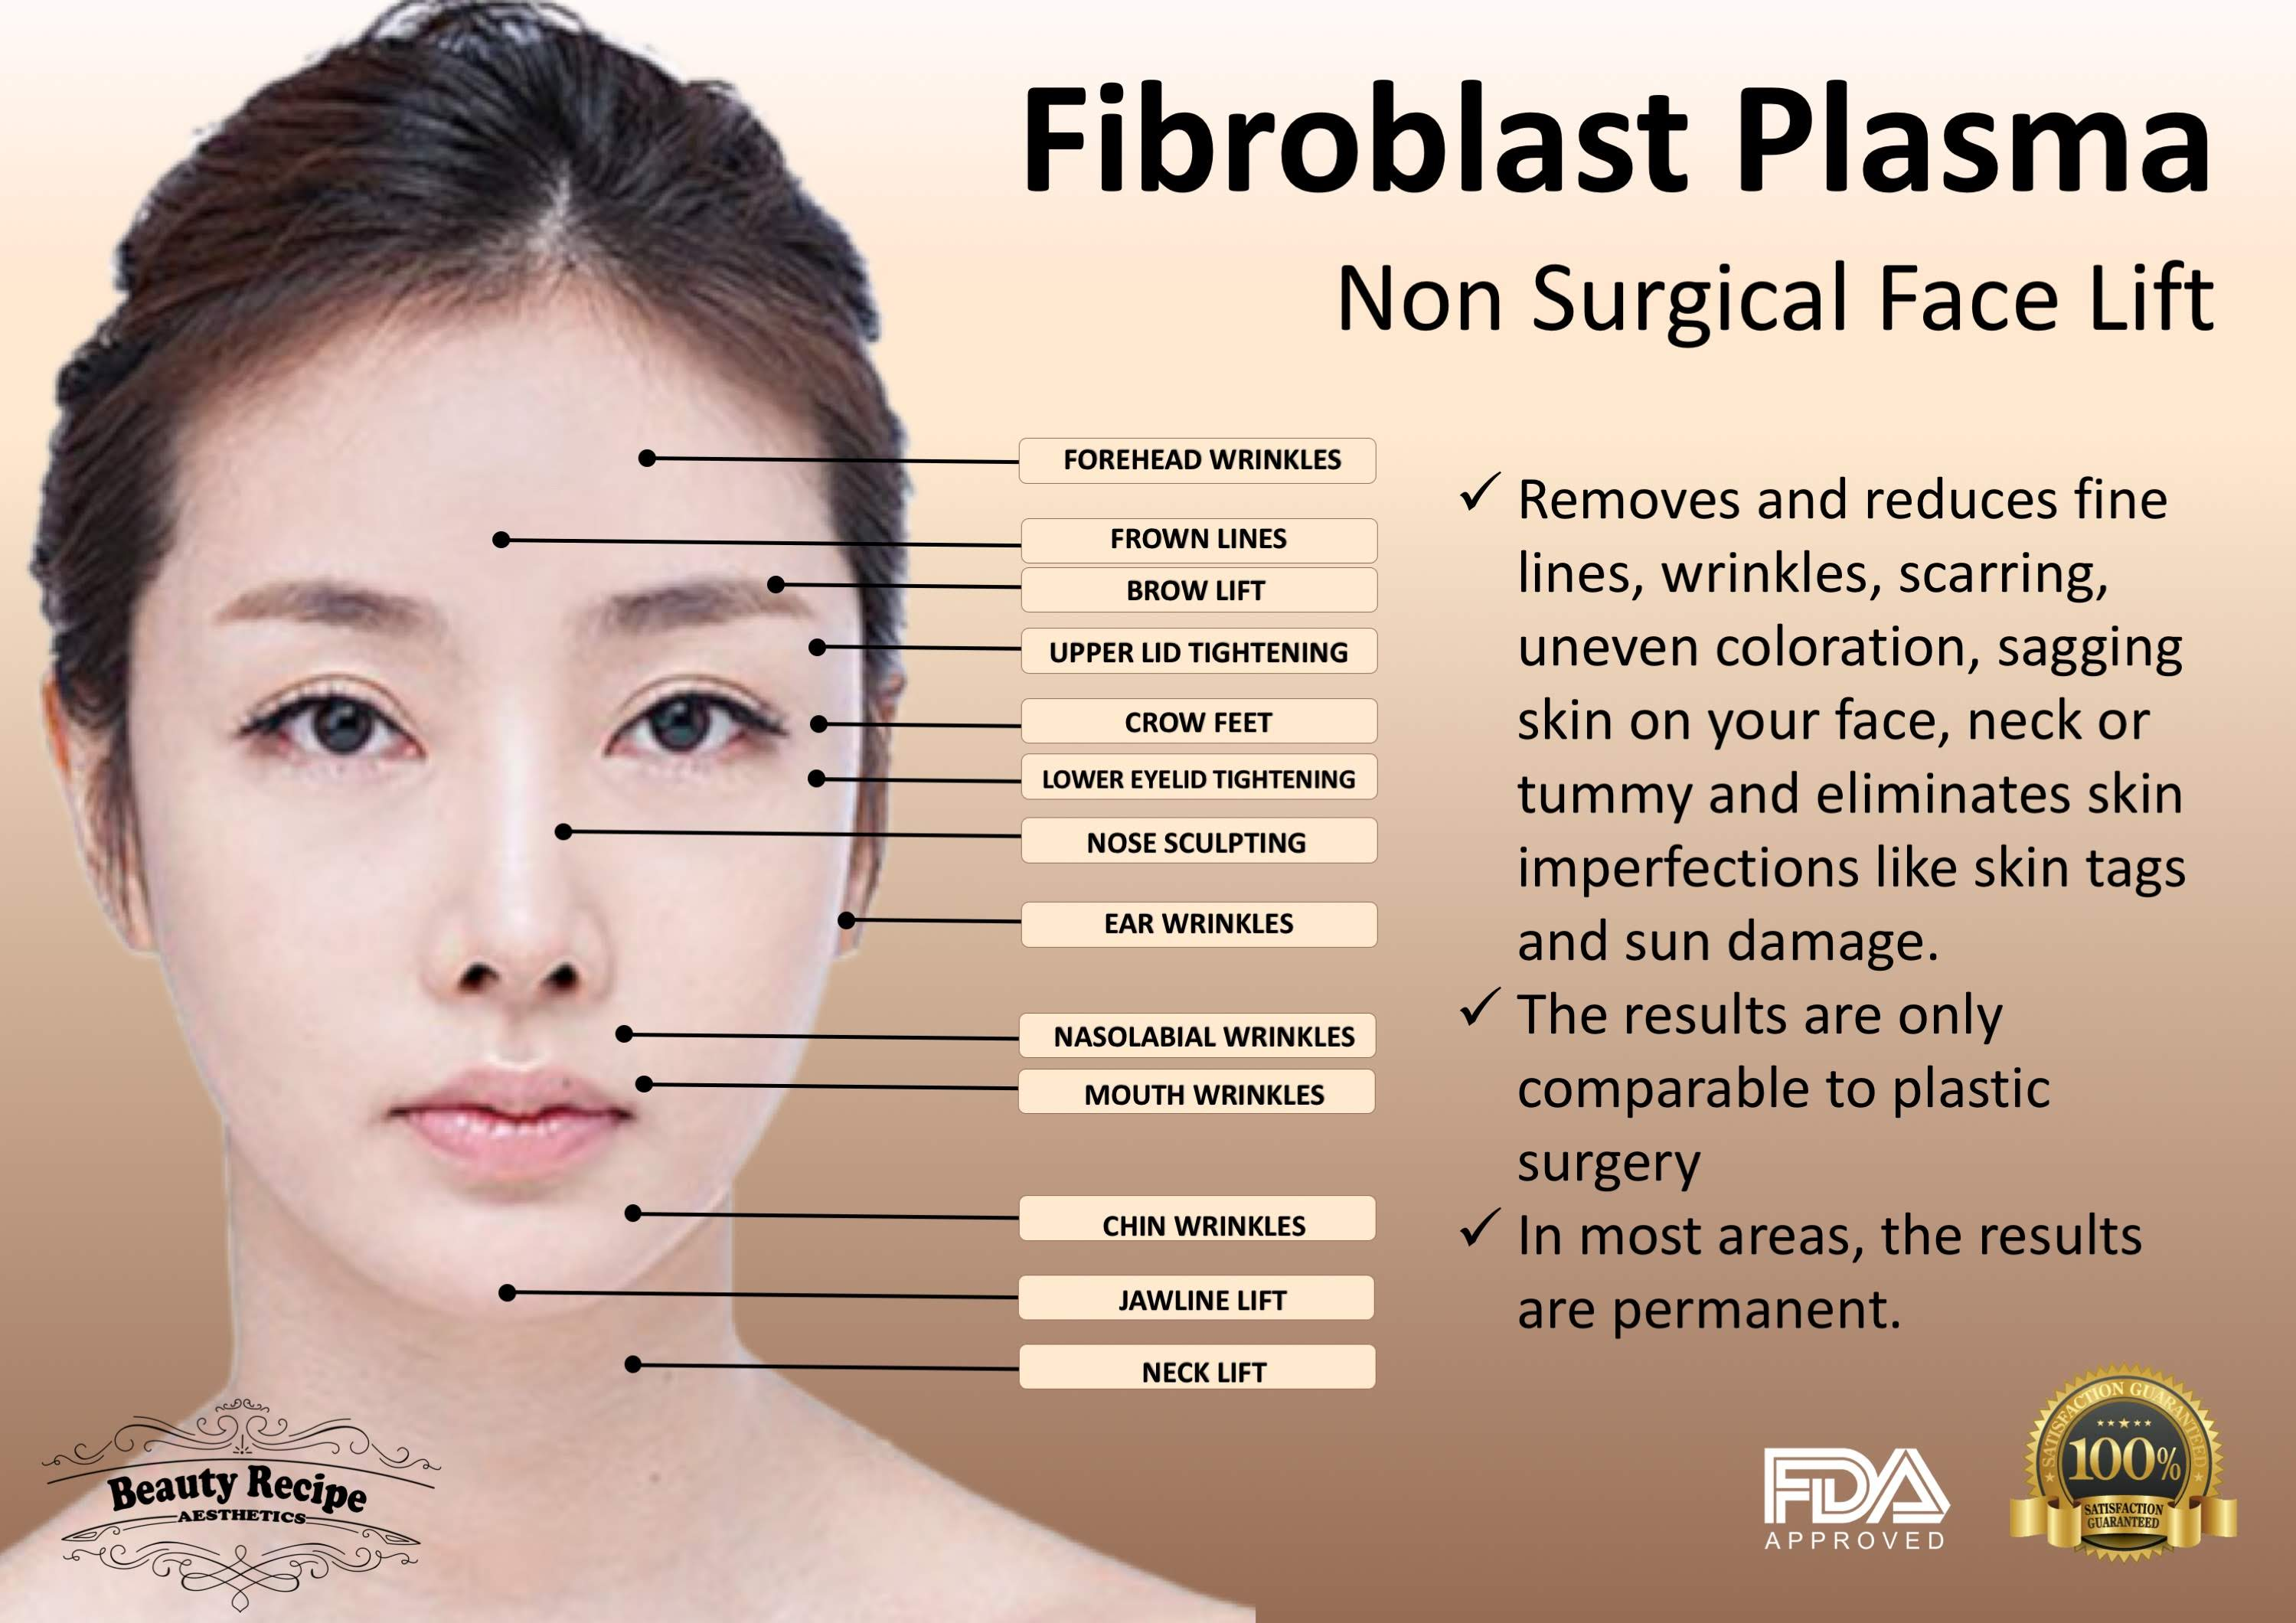 Plasma Fibroblast Non surgical face lift singapore training Course